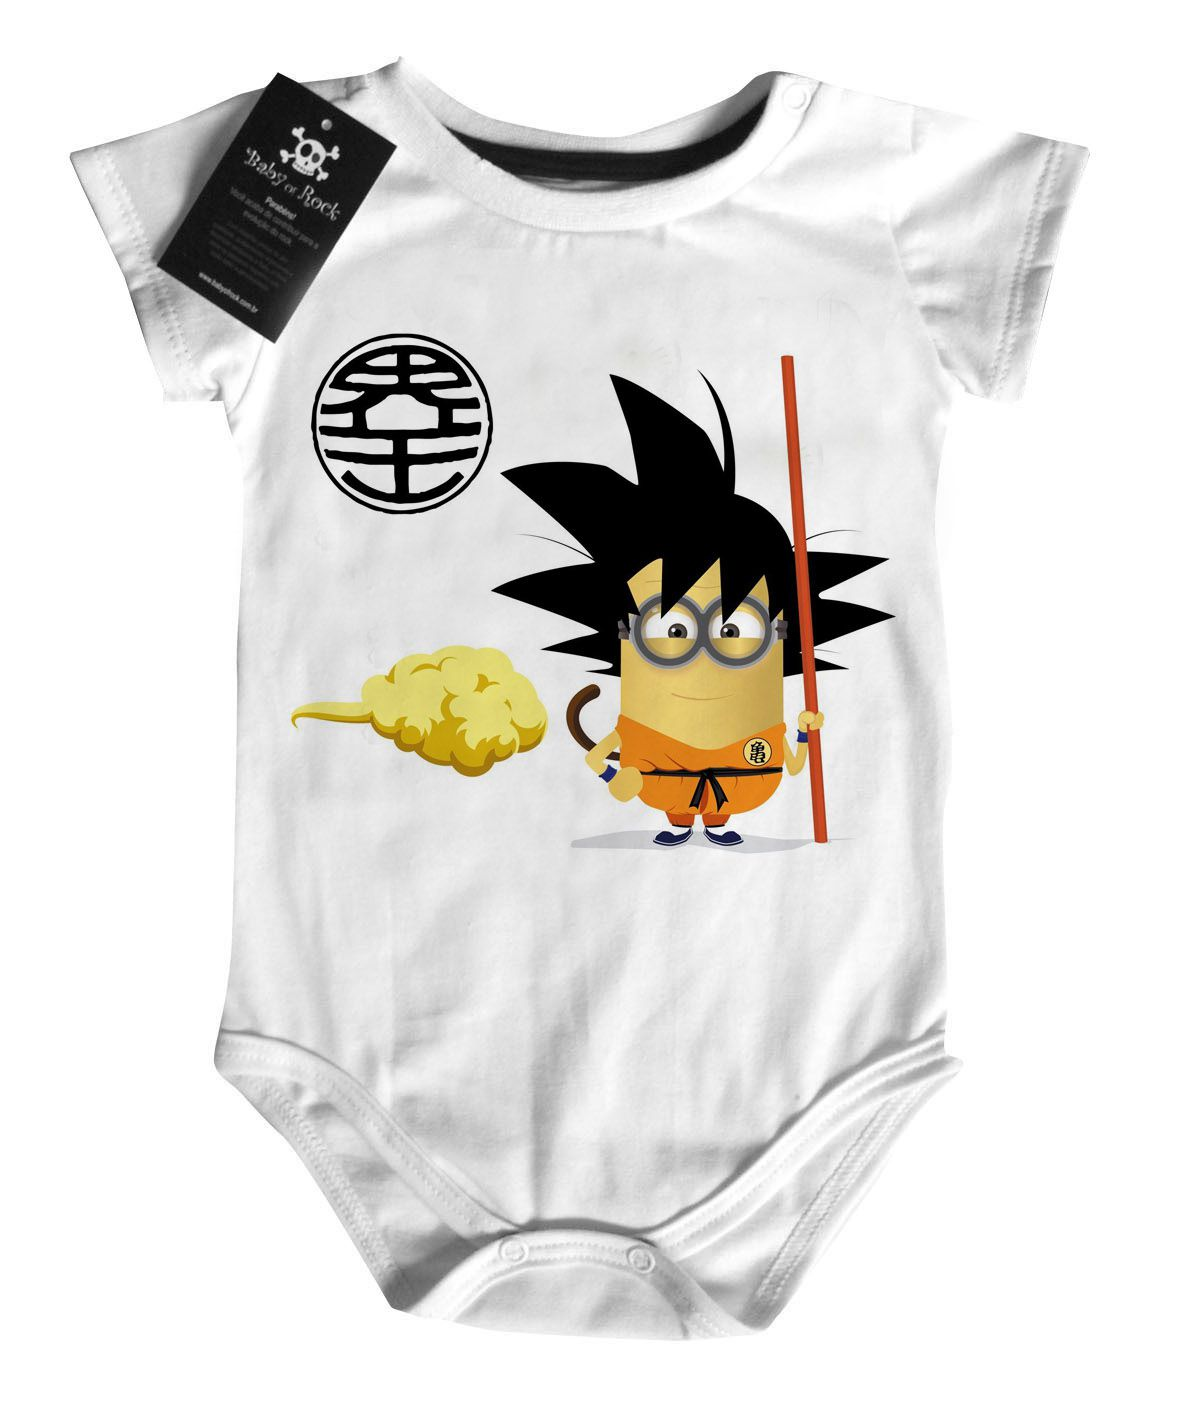 Body  Dragon Ball - Goku Minions - White  - Baby Monster S/A